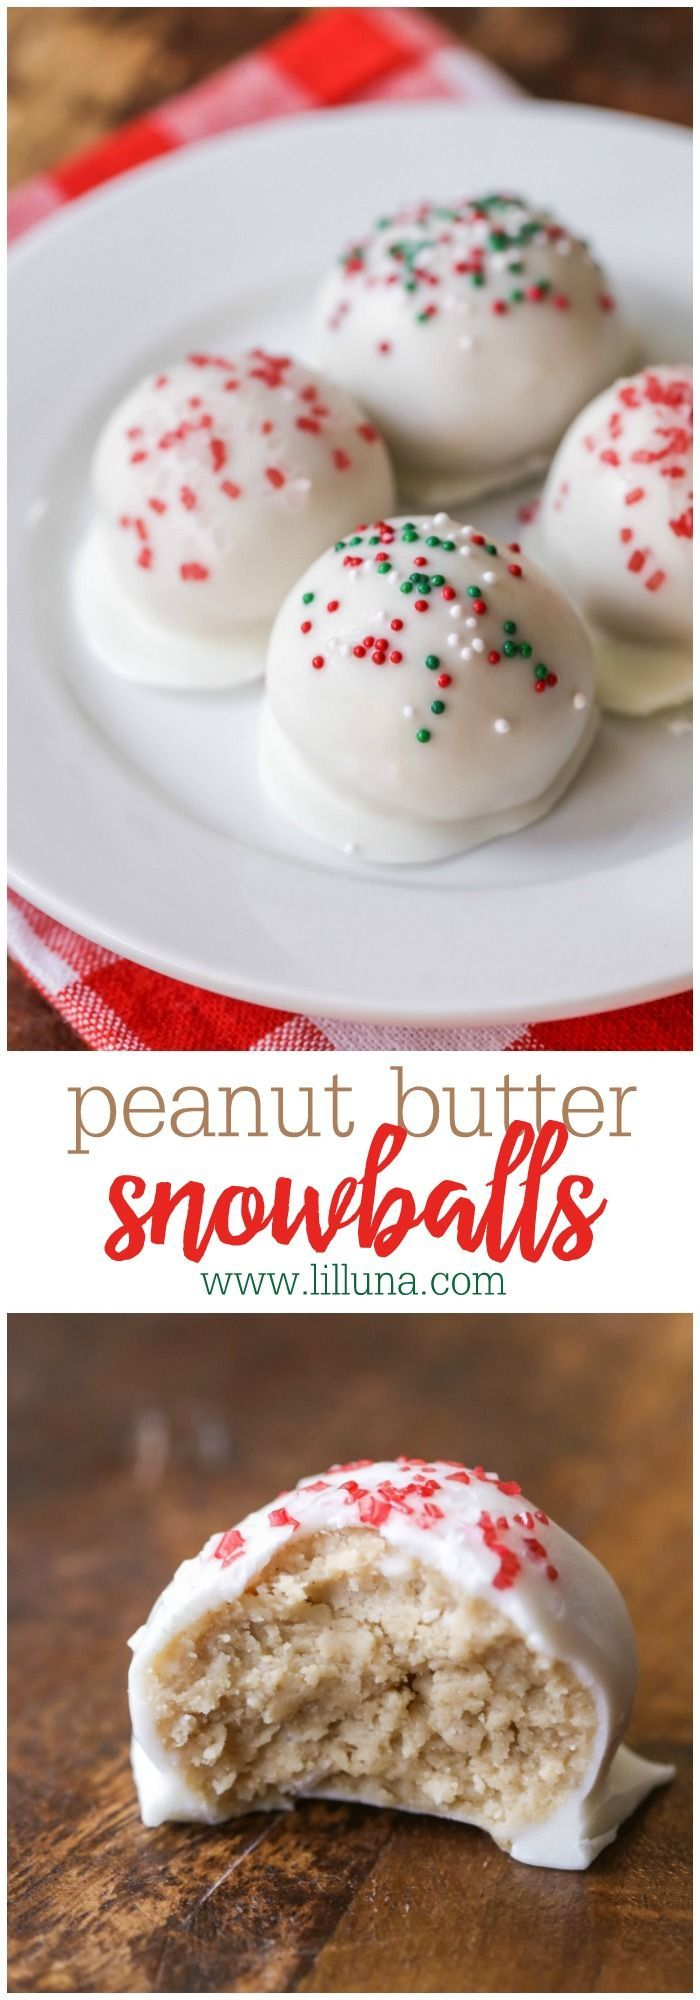 Peanut Butter Snowballs - filled with sweet, creamy peanut butter and covered in vanilla candy coating and sprinkles!